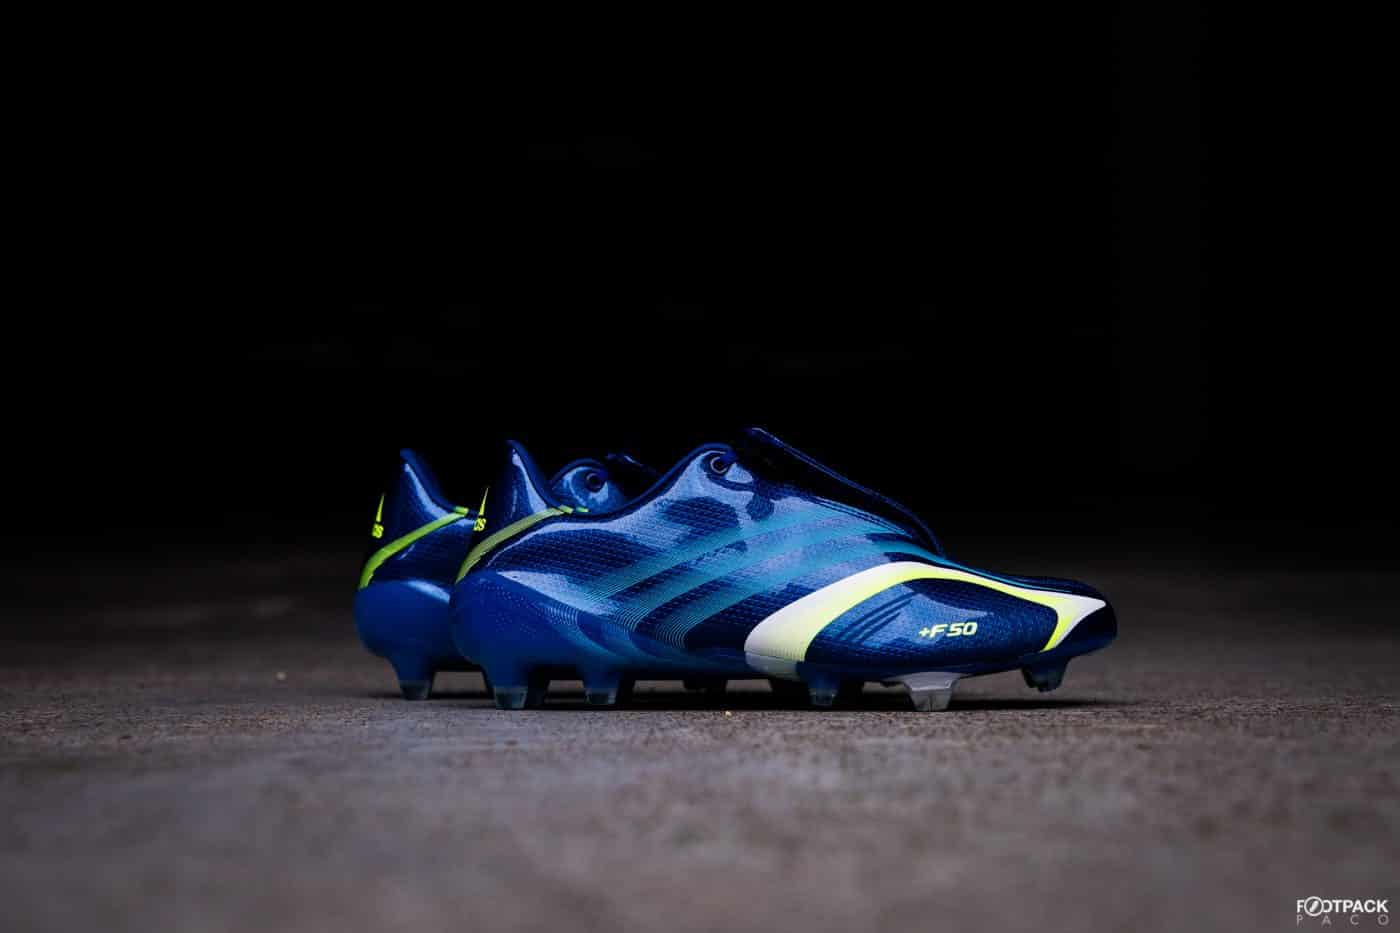 adidas-X50.6-reedition-2019-adidas-F50.6-tunit-2006-footpack-9